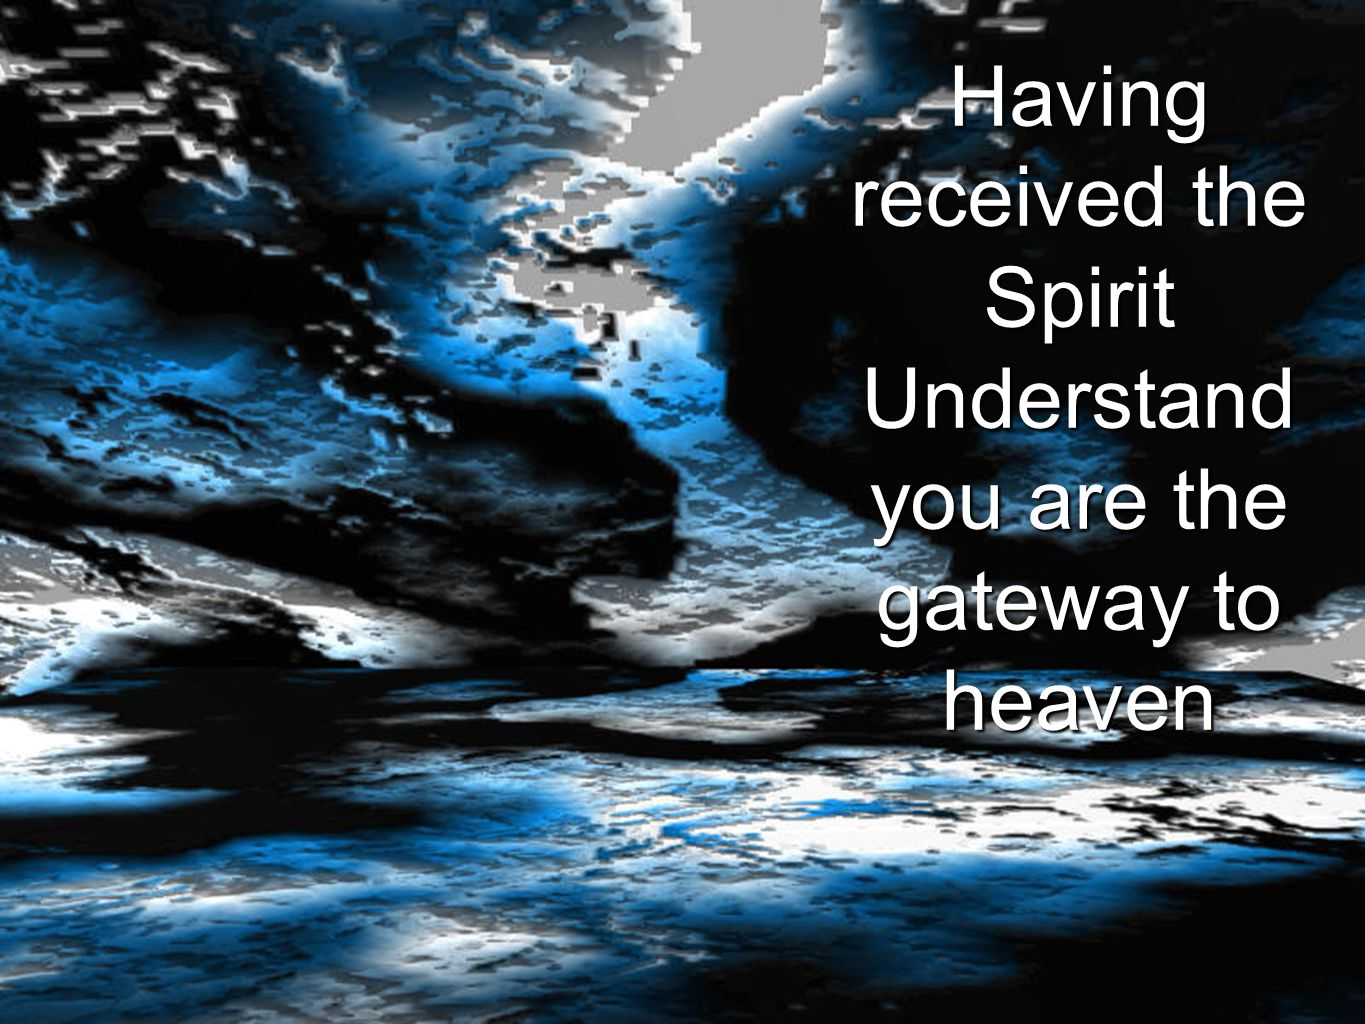 Having received the Spirit Understand you are the gateway to heaven